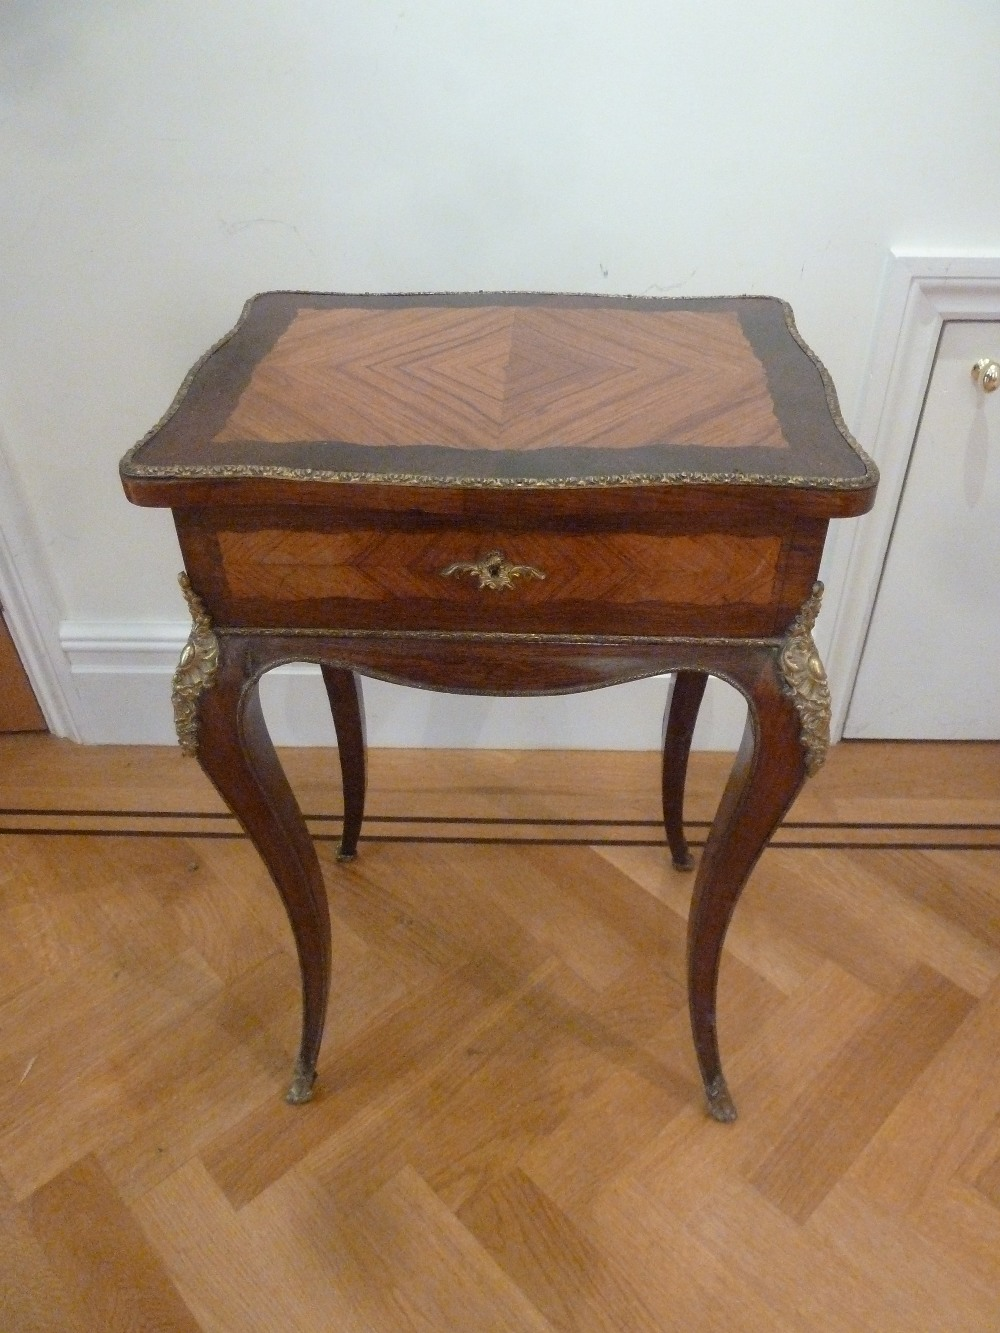 Lot 11 - A French Louis XVI style rectangular side table with hinged top on cabriole legs